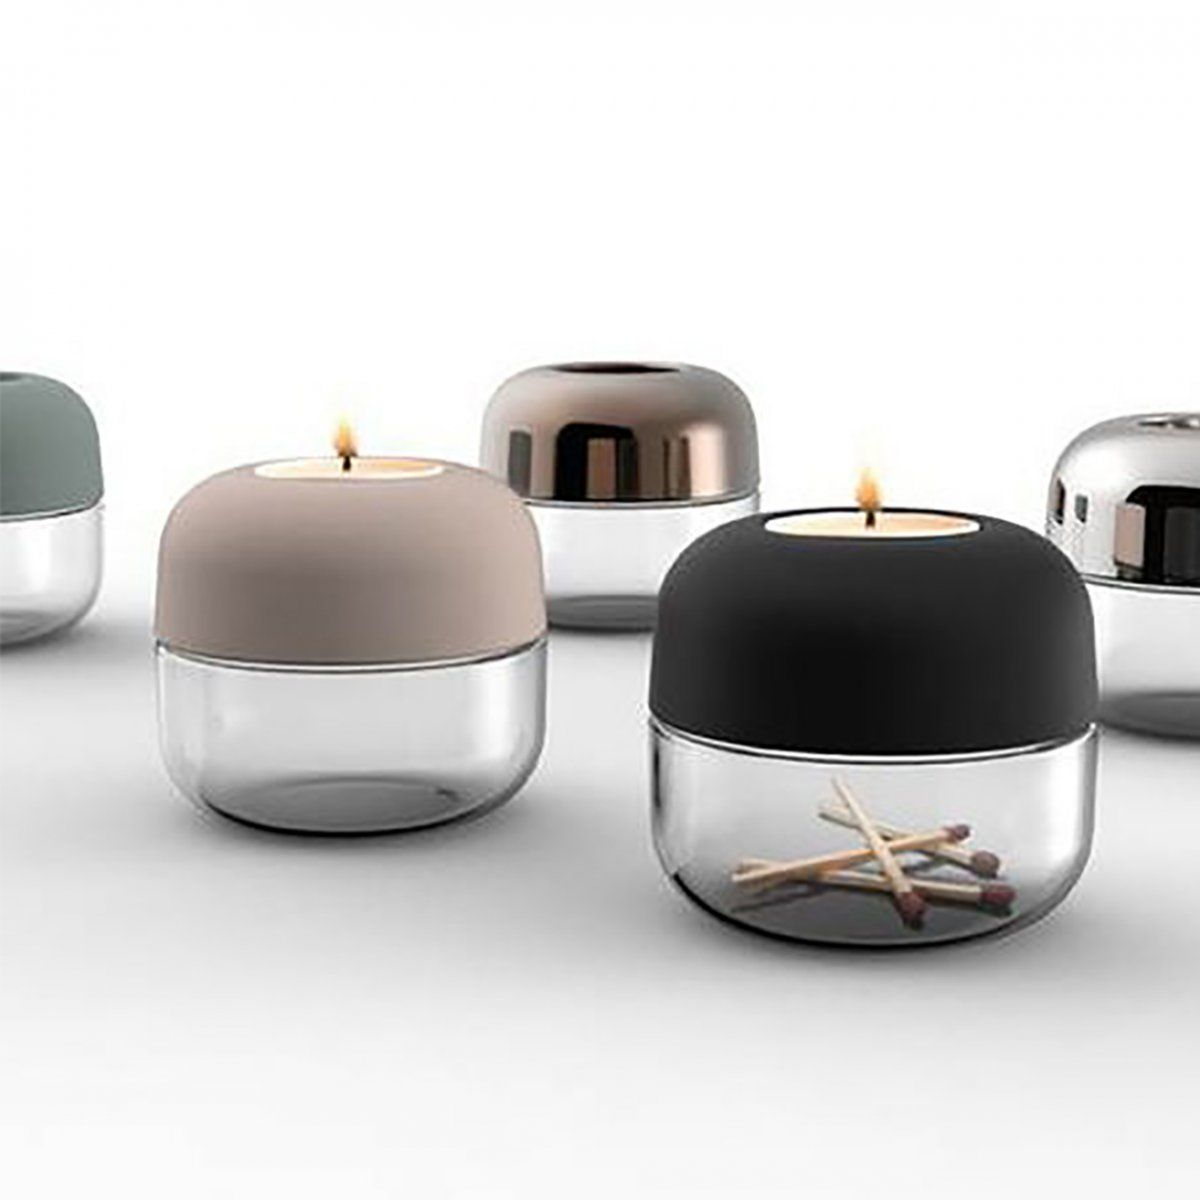 Show Tealight is a new interpretation of one of the Menu classics: the Galerie Candle Holder. Made to dazzle your windowsills, to cosy up your grey afternoons and warm your windy nights.